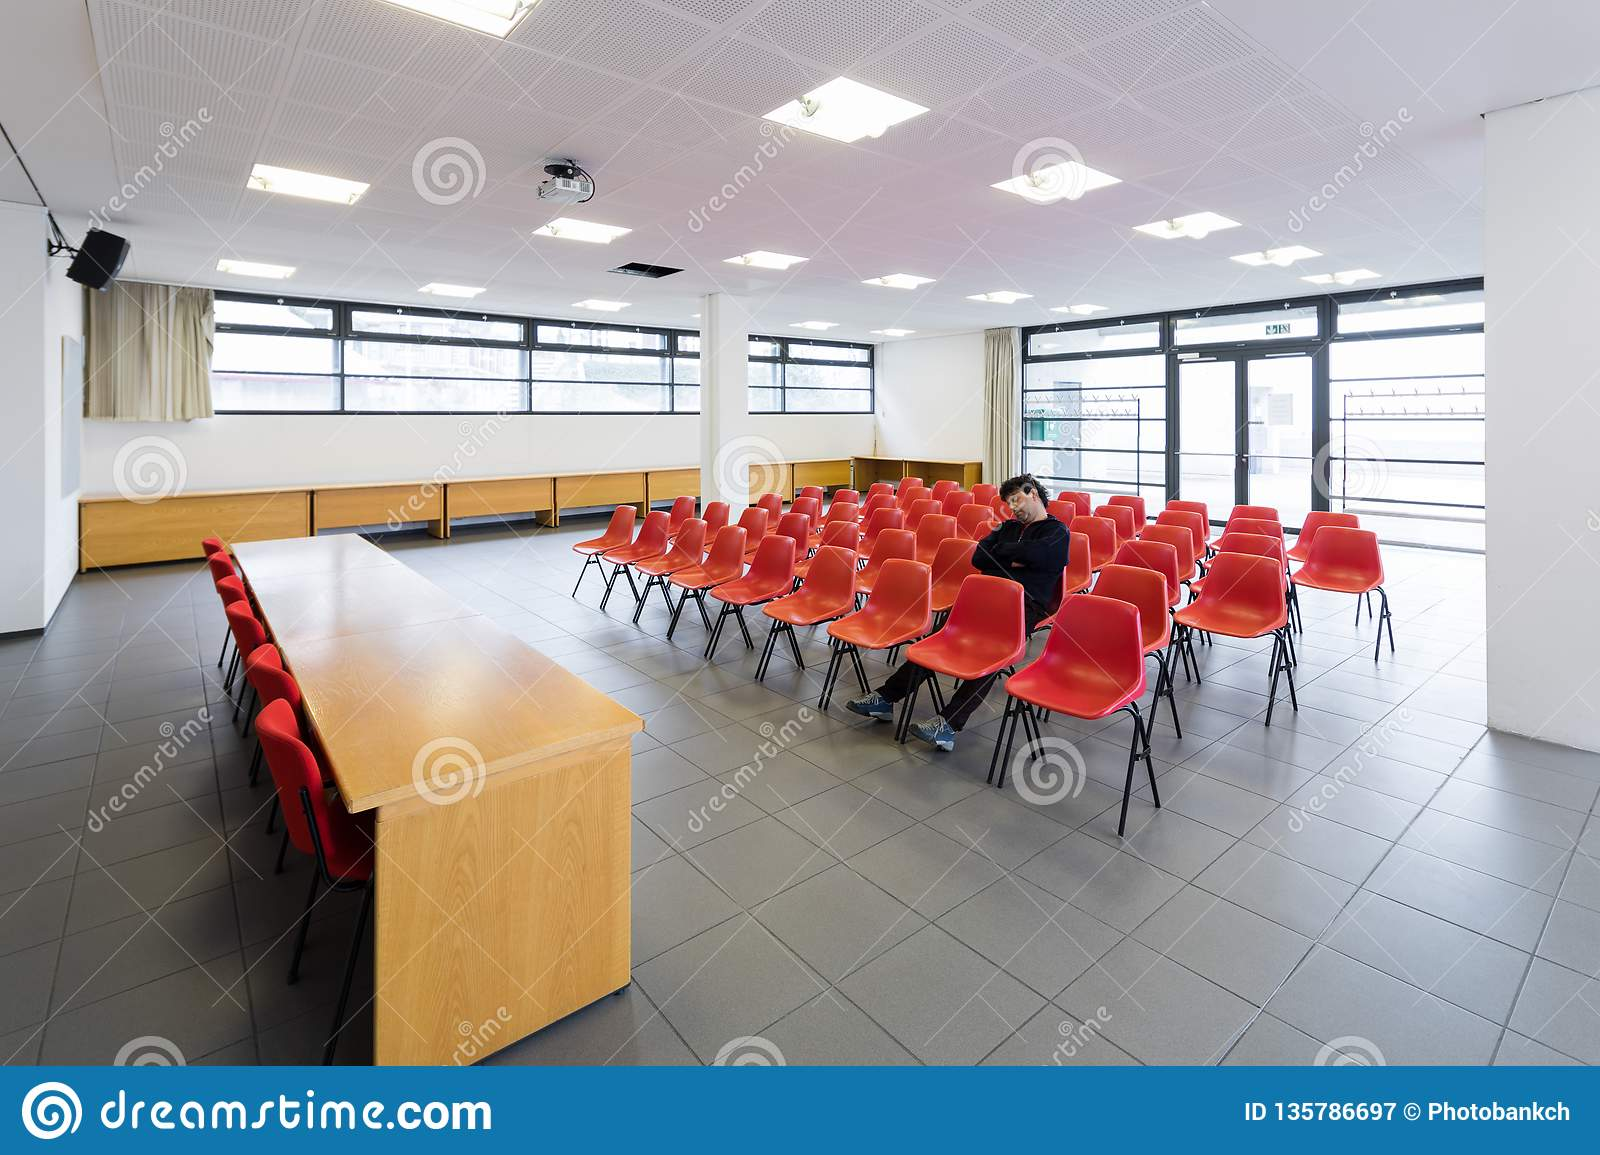 Lonely man in empty conference room, concept